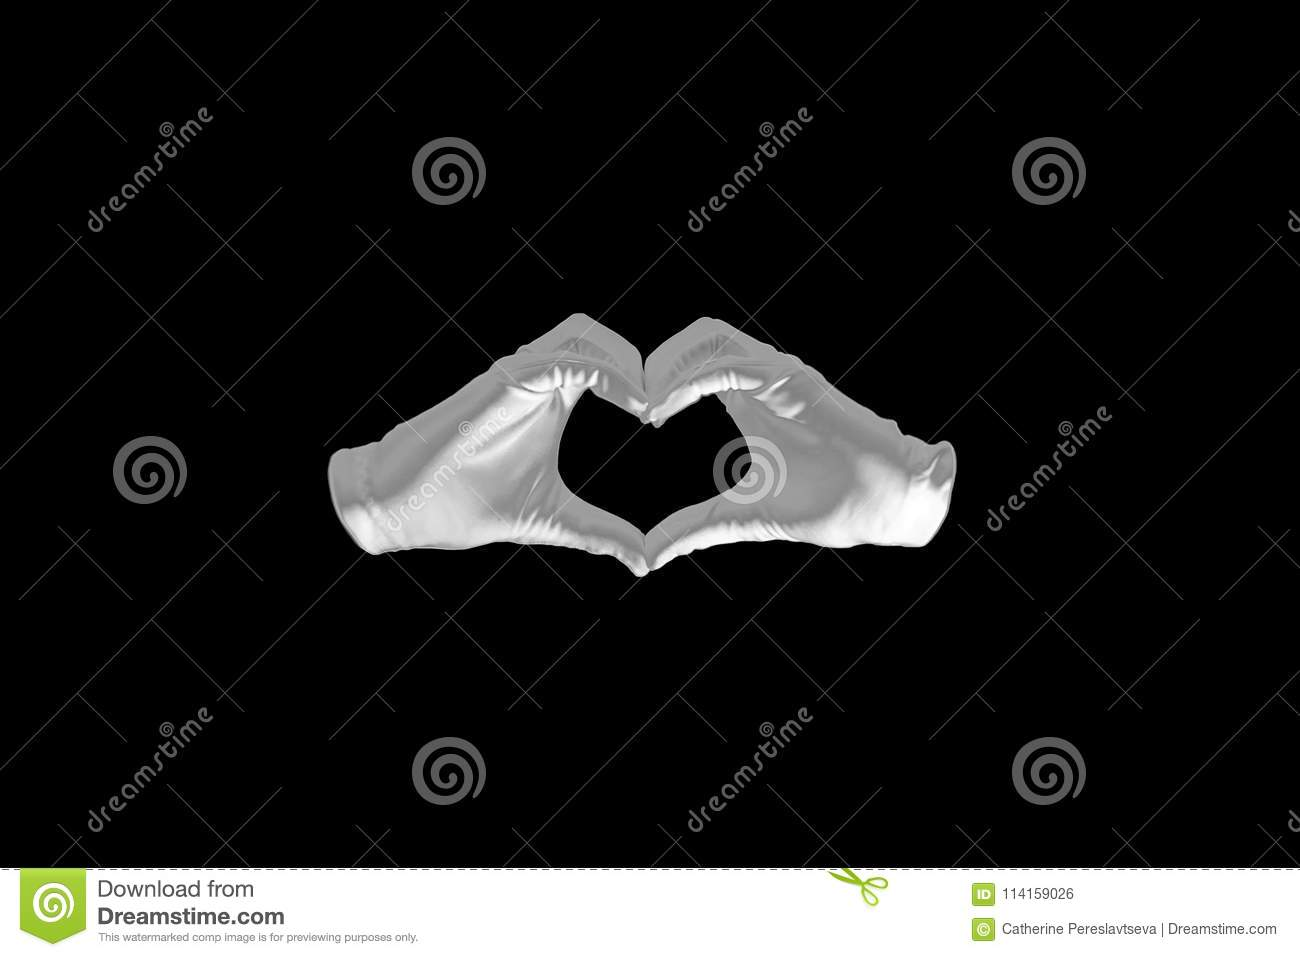 Pair of hands in the form of heart on a black background. love and relationships concept - closeup of hands showing heart shape